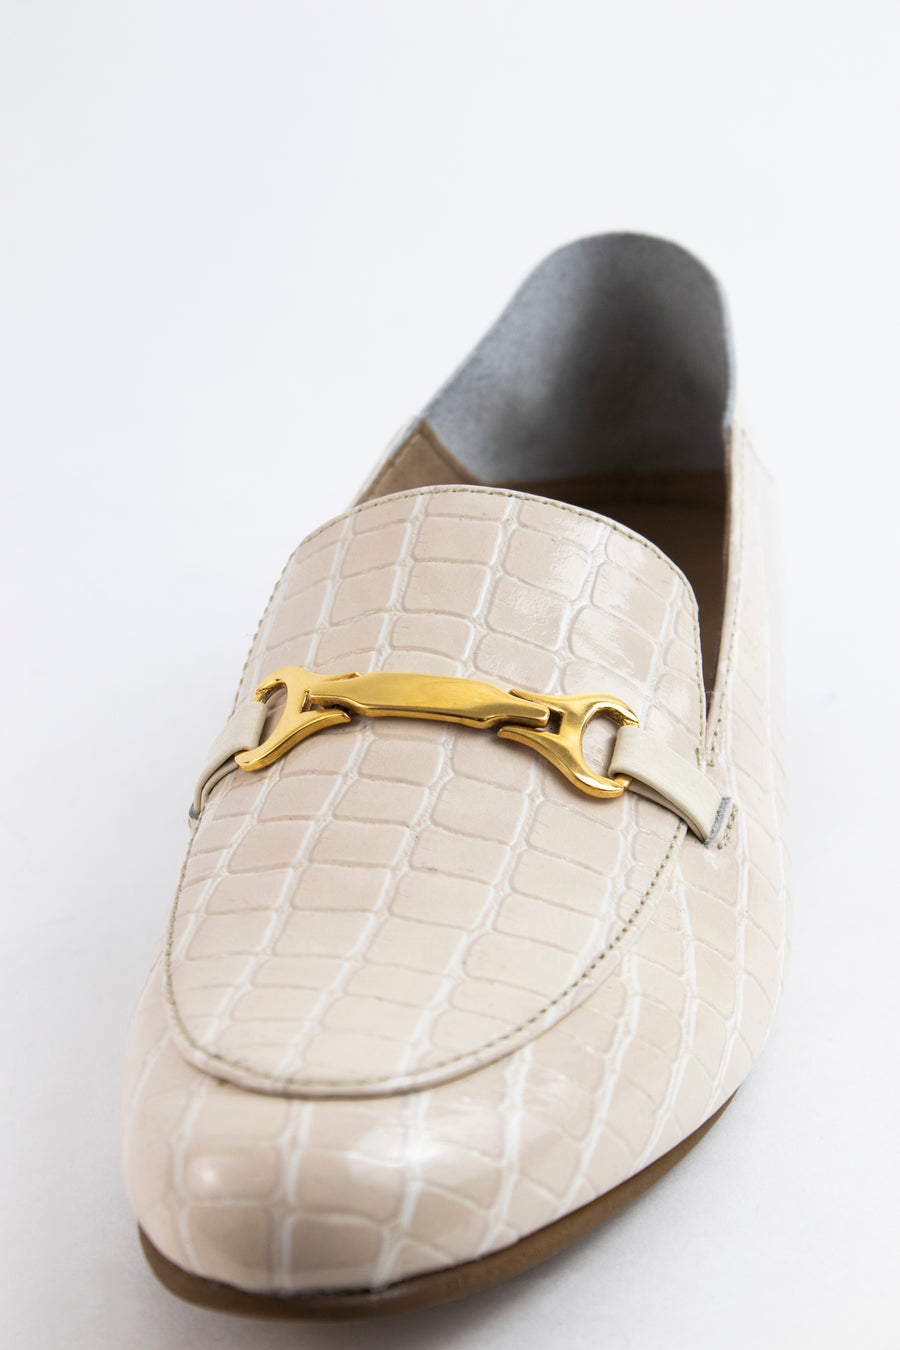 Prague loafers in ivory croc embossed leather